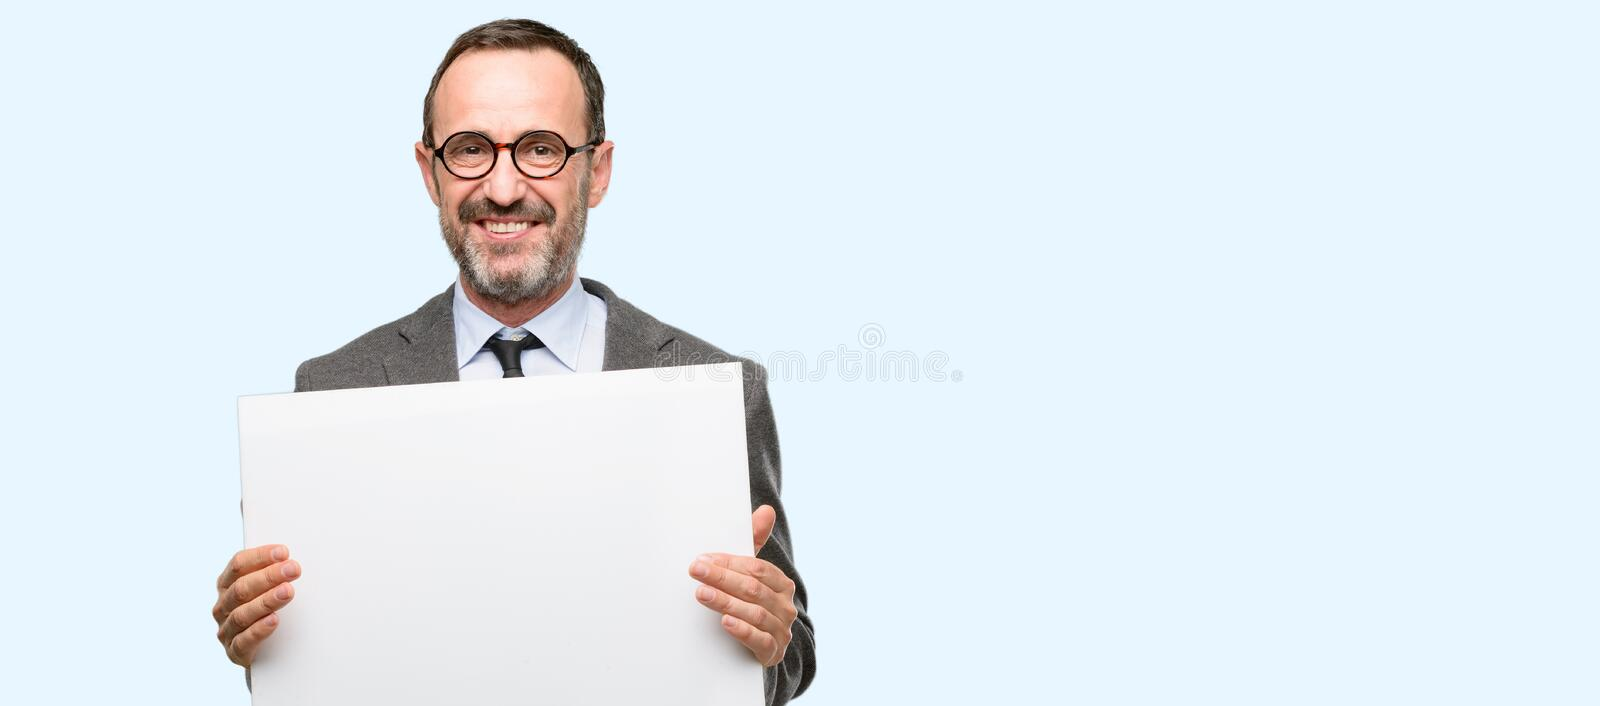 Handsome senior man over blue background royalty free stock image